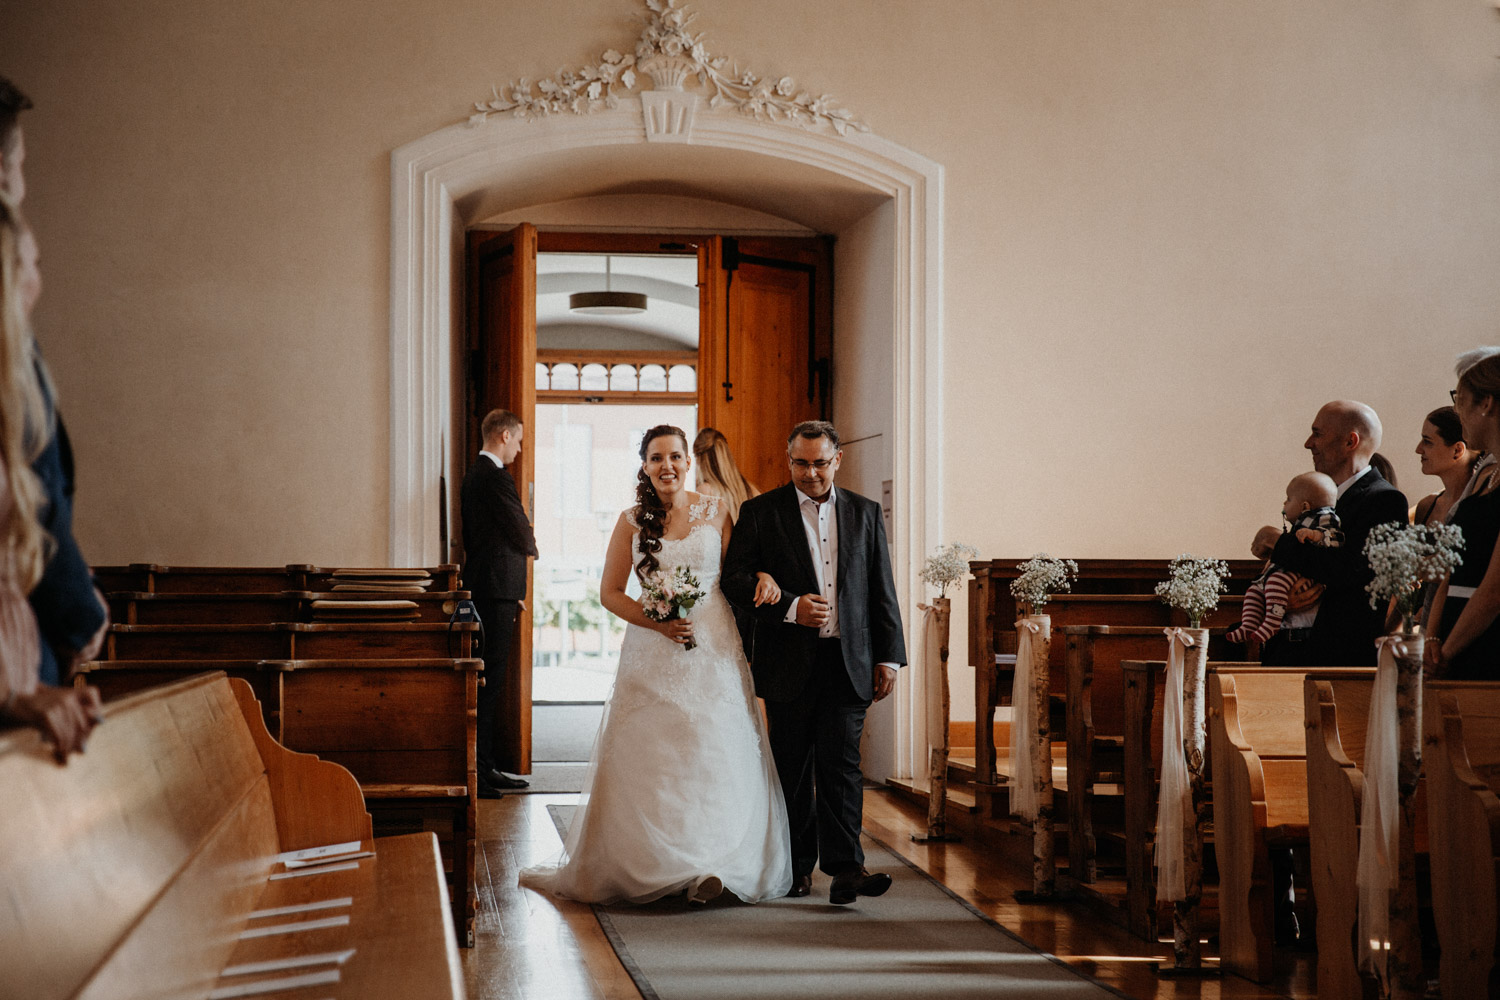 Wedding photographer in Switzerland church wedding bride father